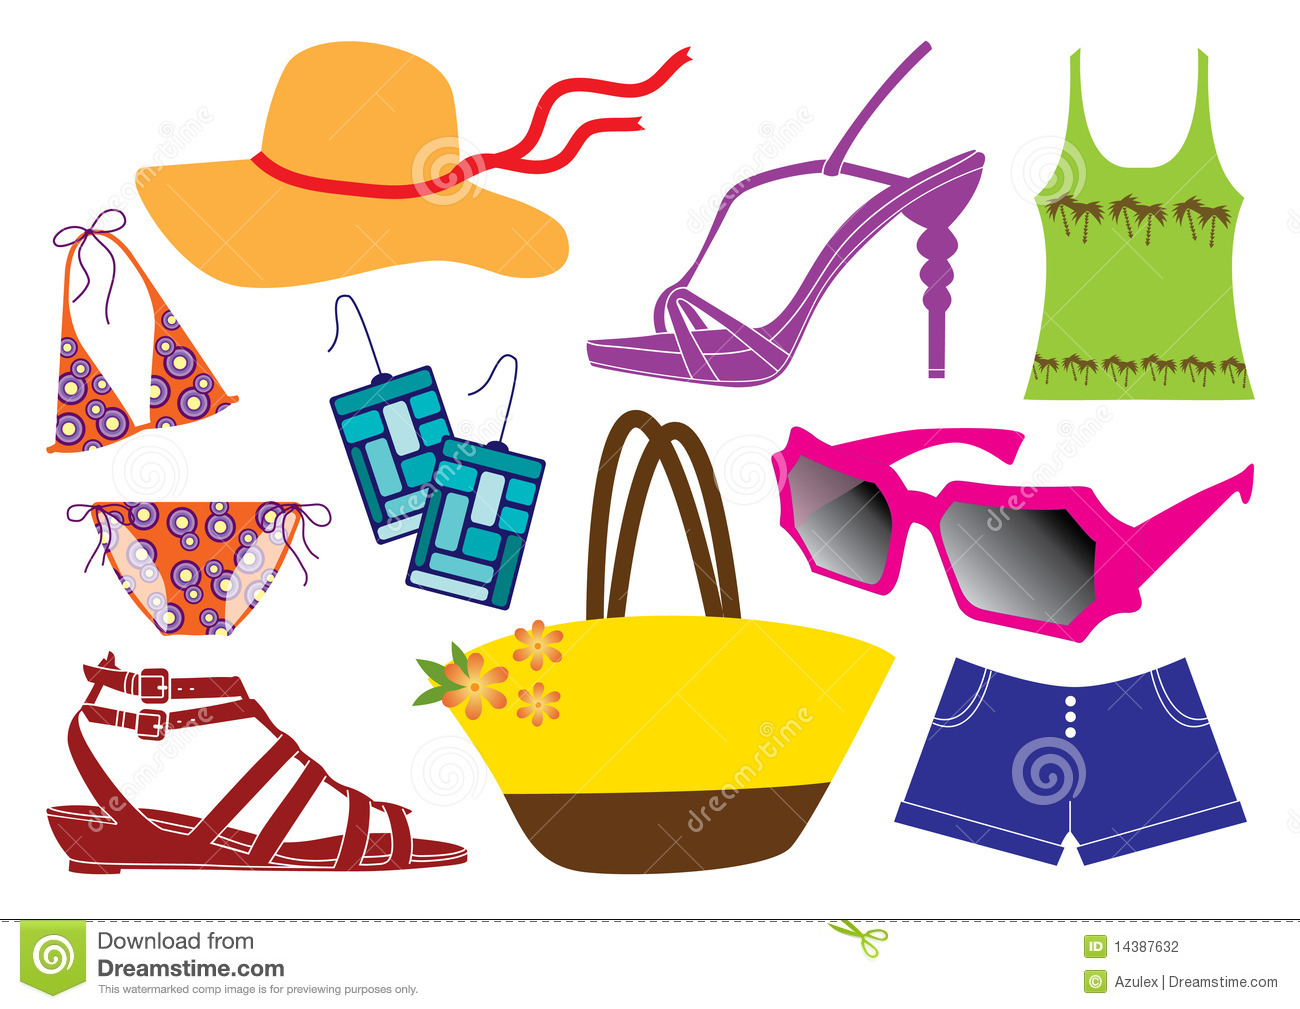 Dress clipart sunny Clipart Attire Summer cliparts Attire